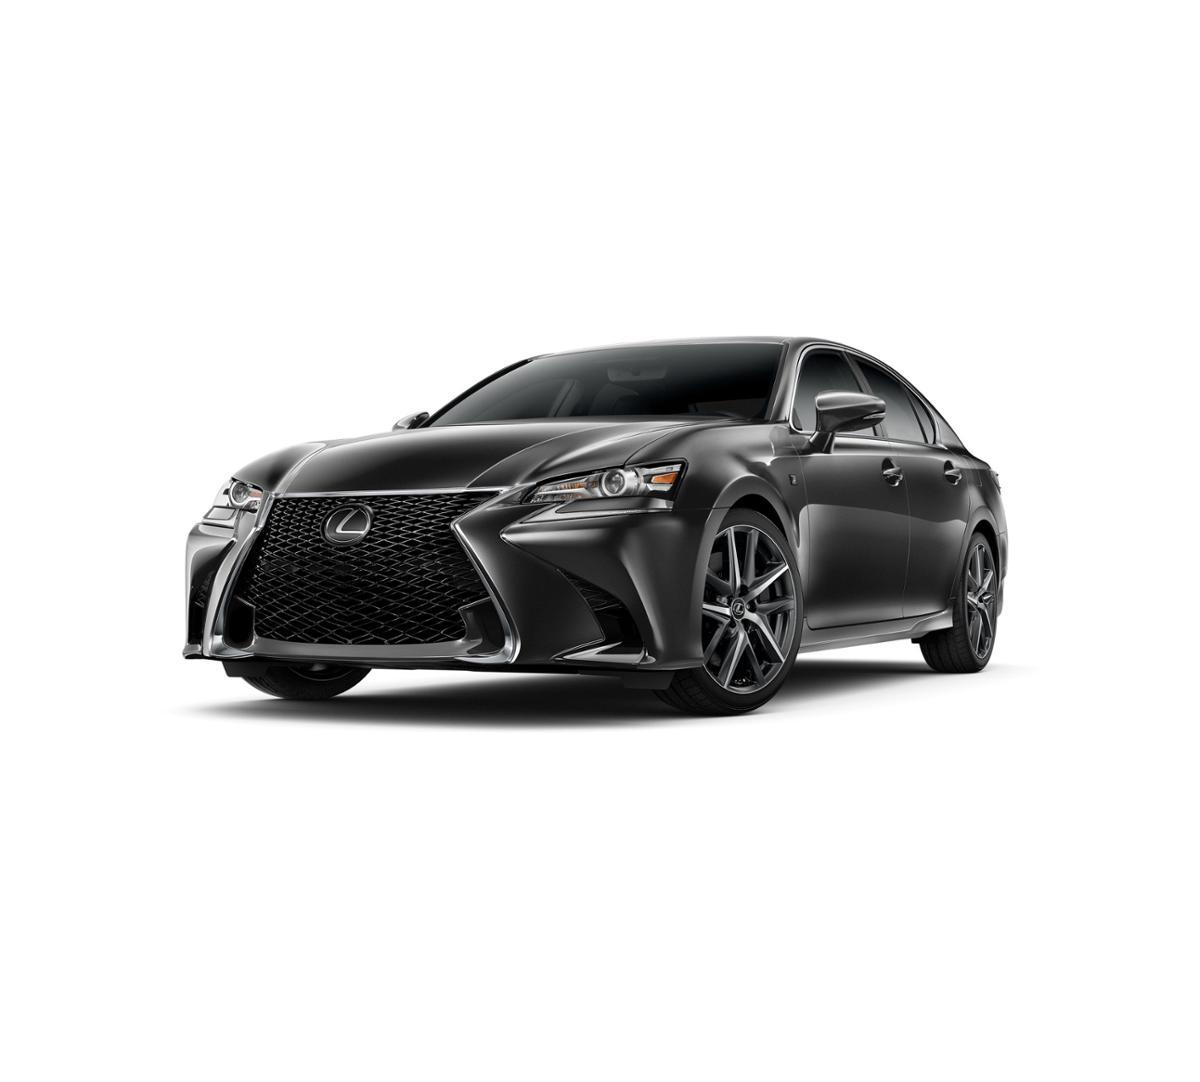 2017 lexus gs 350 houston tx sterling mccall lexus ha008151. Black Bedroom Furniture Sets. Home Design Ideas